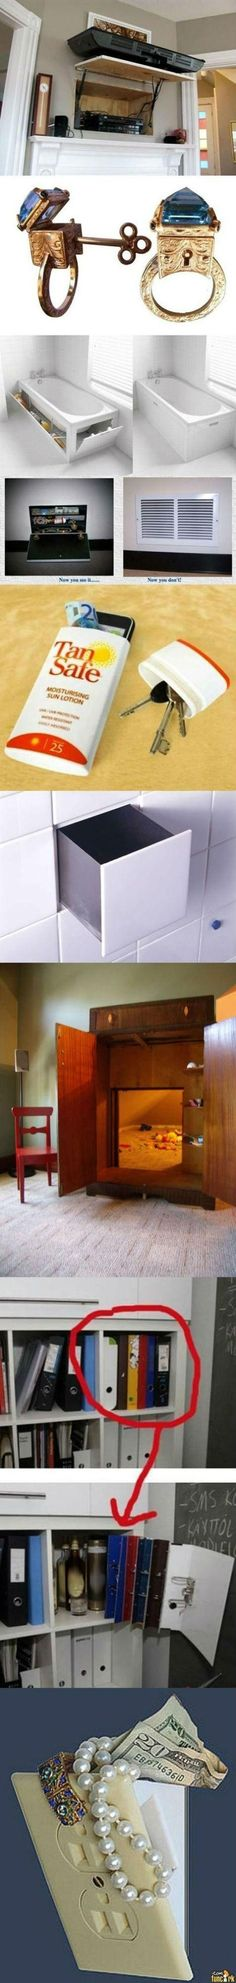 PICTURE: Coolest Hiding Places Ever